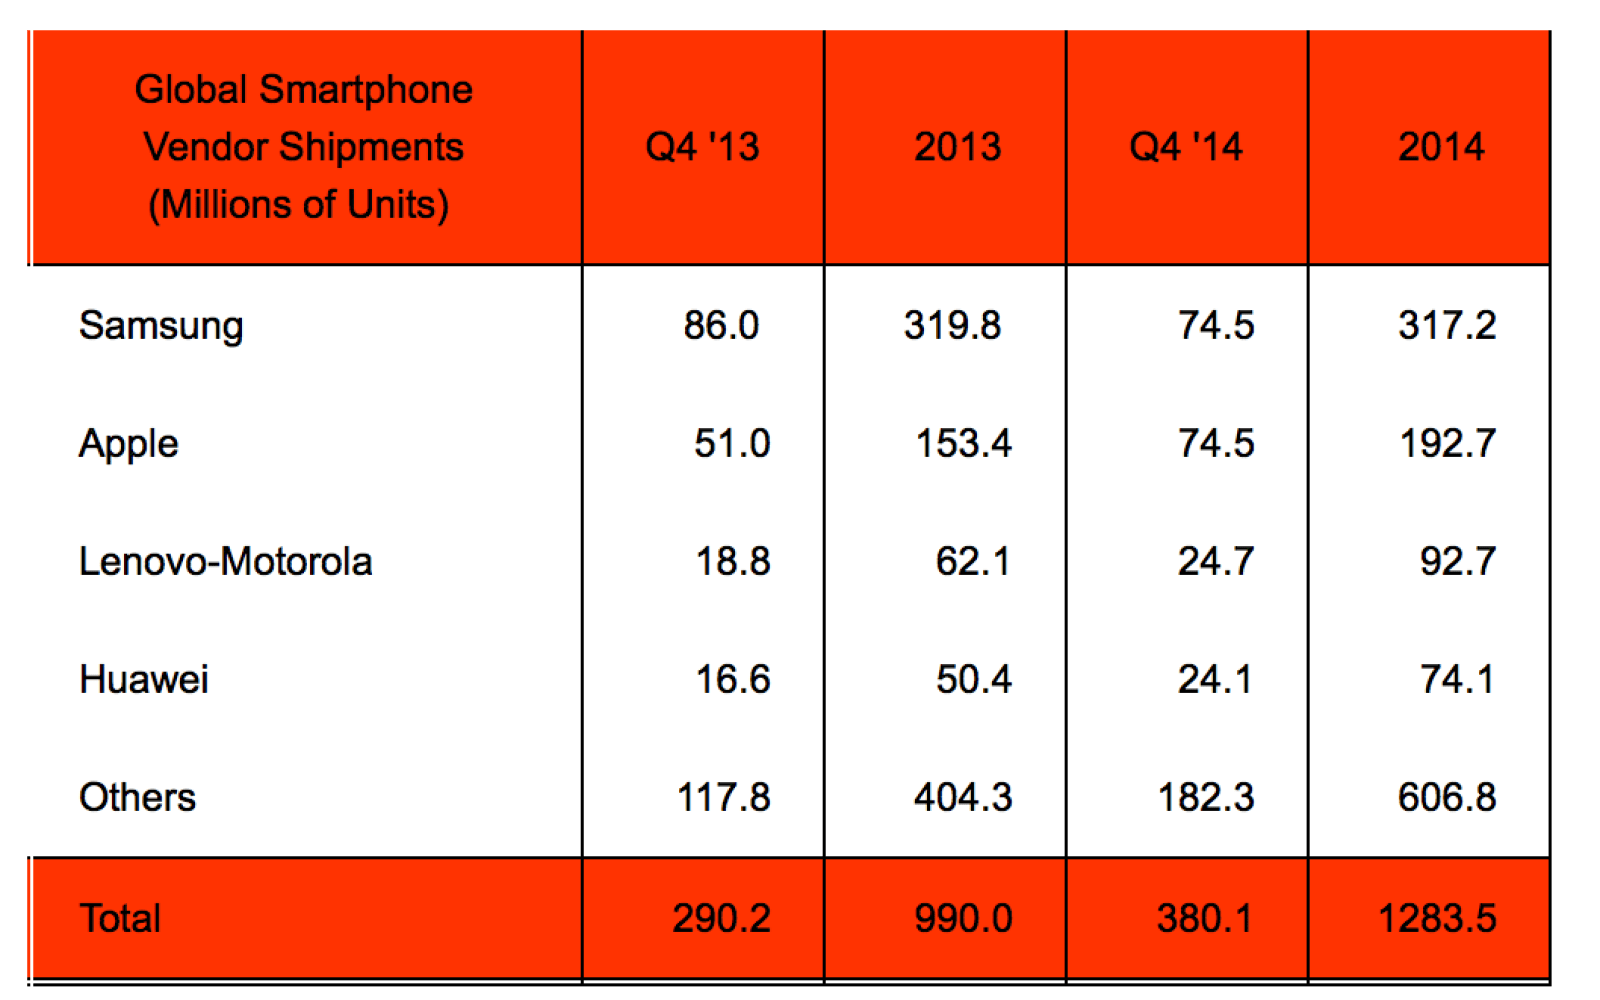 Apple ties for title of world's largest smartphone vendor in Q4 2014